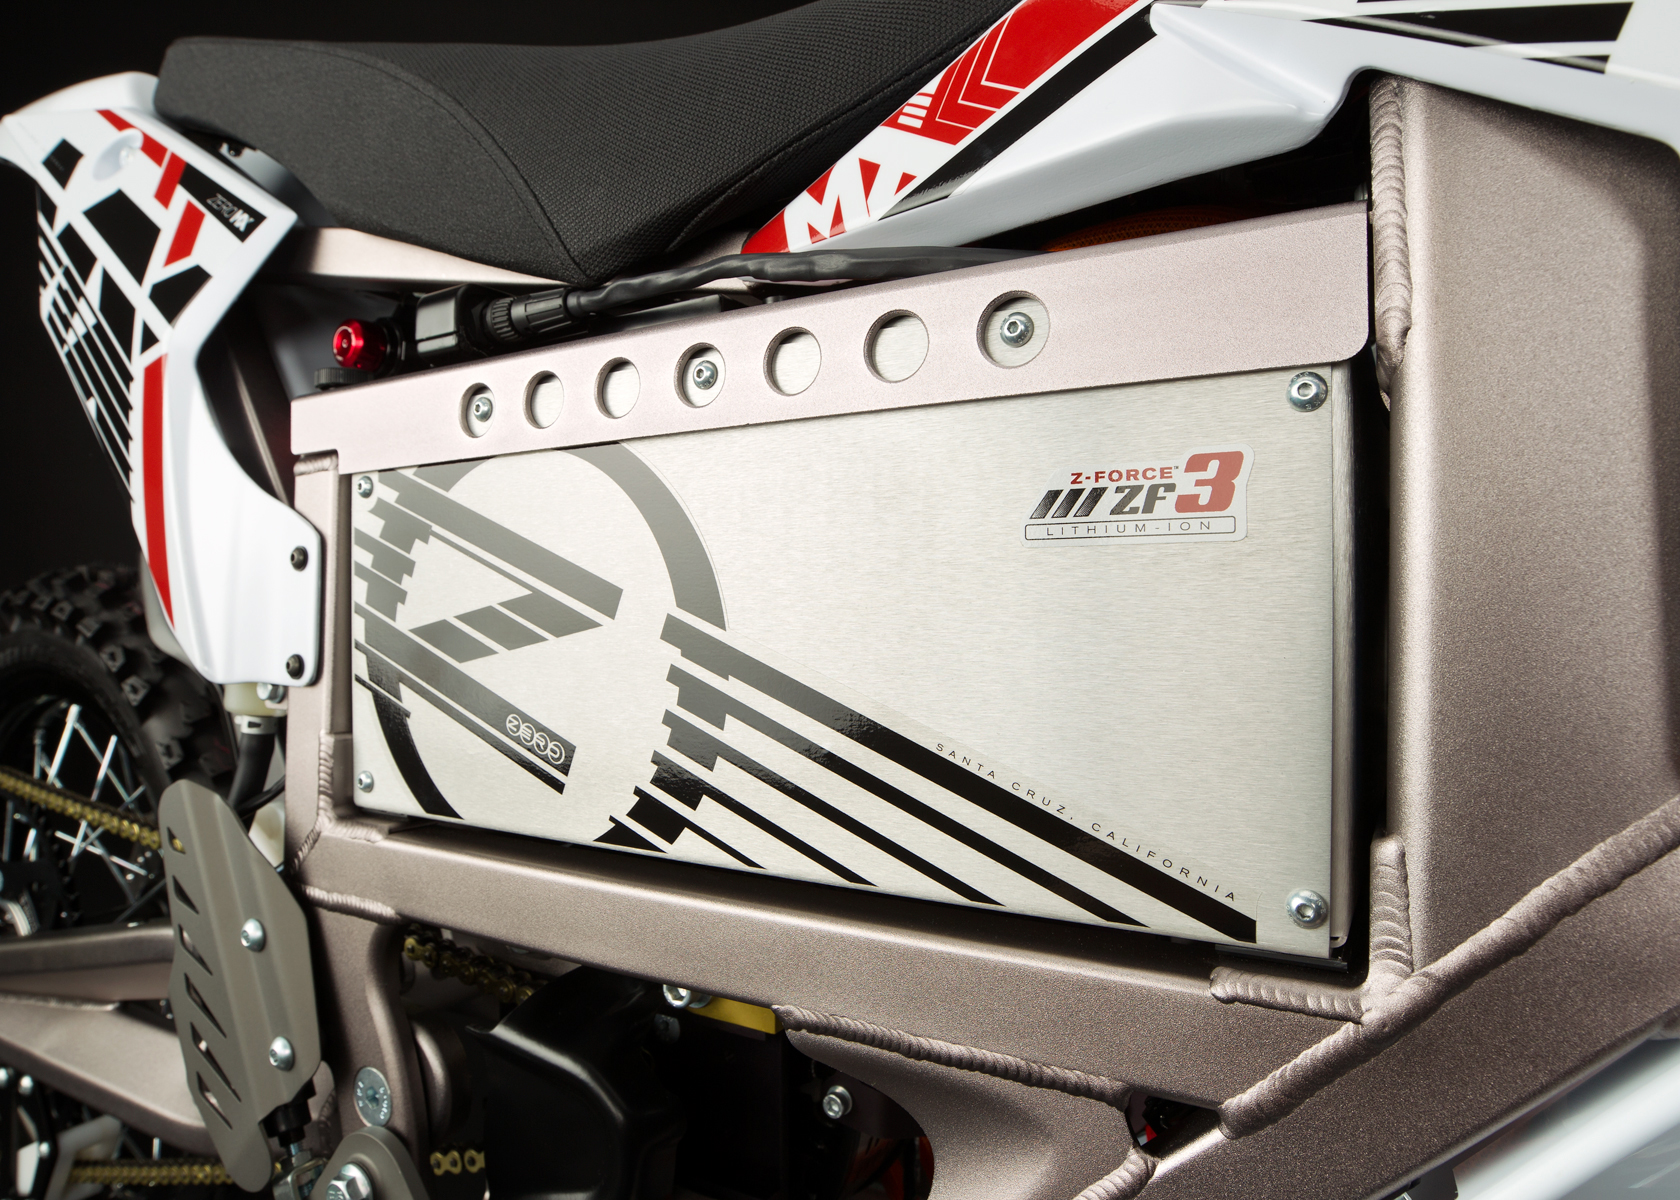 2012 Zero MX Electric Motorcycle: Battery